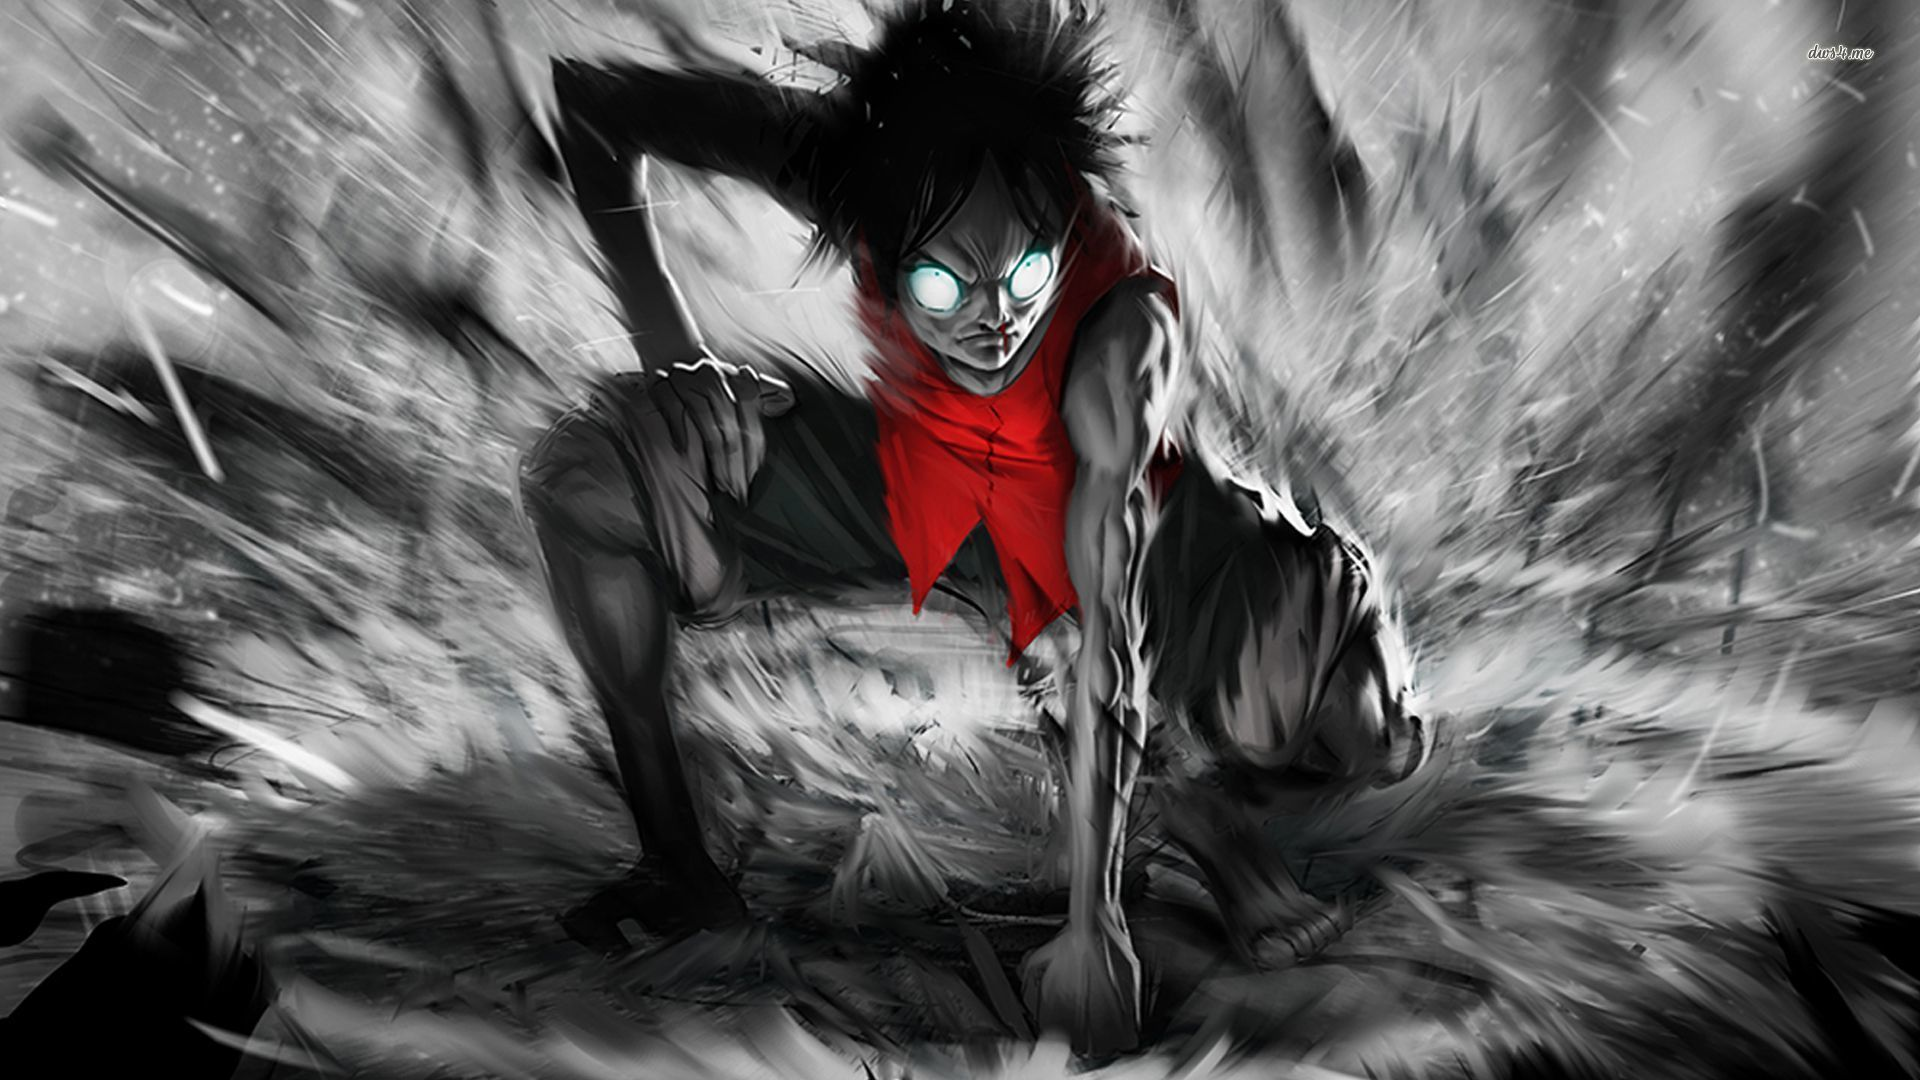 Pin By Mu Al S On Anime Hd Anime Wallpapers One Piece